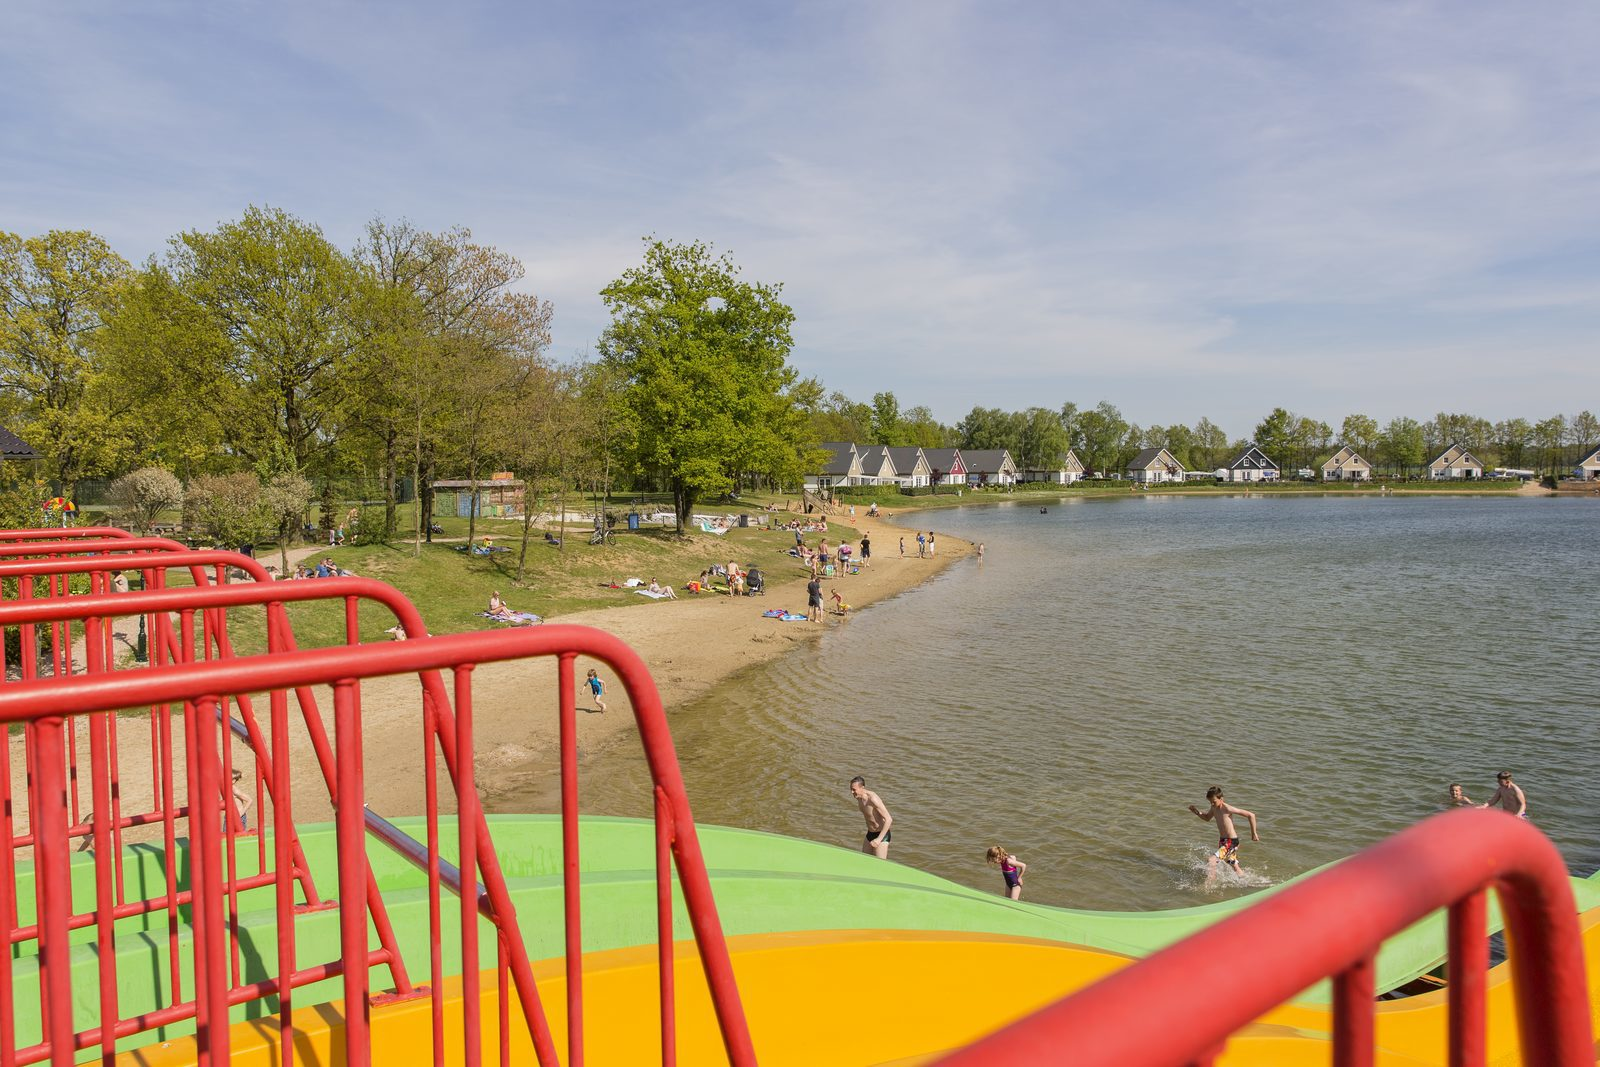 Recreational lake & beach pool with slides and view